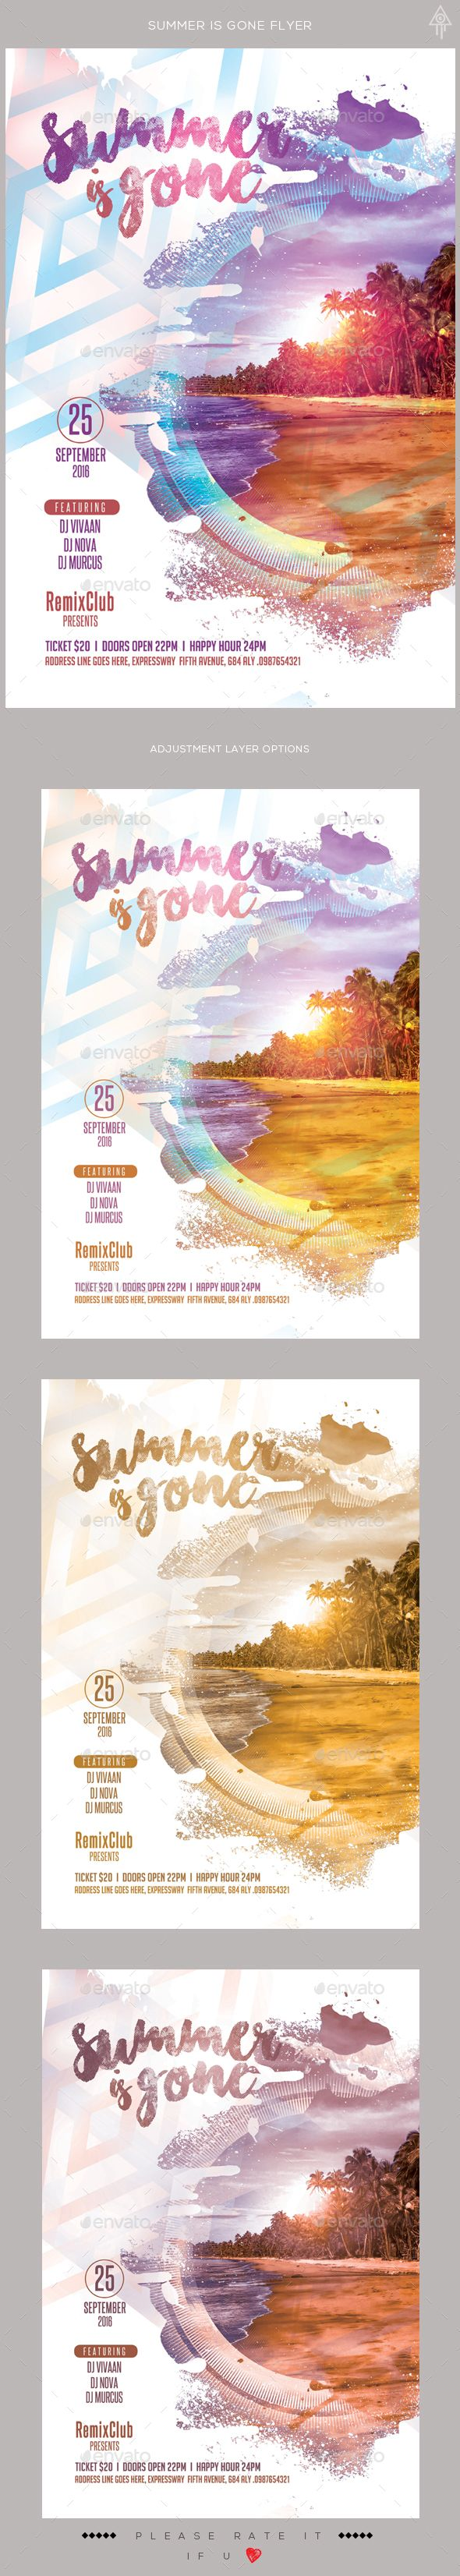 Poster design template psd - Summer Is Gone Flyer Event Poster Designpsd Templatesflyer